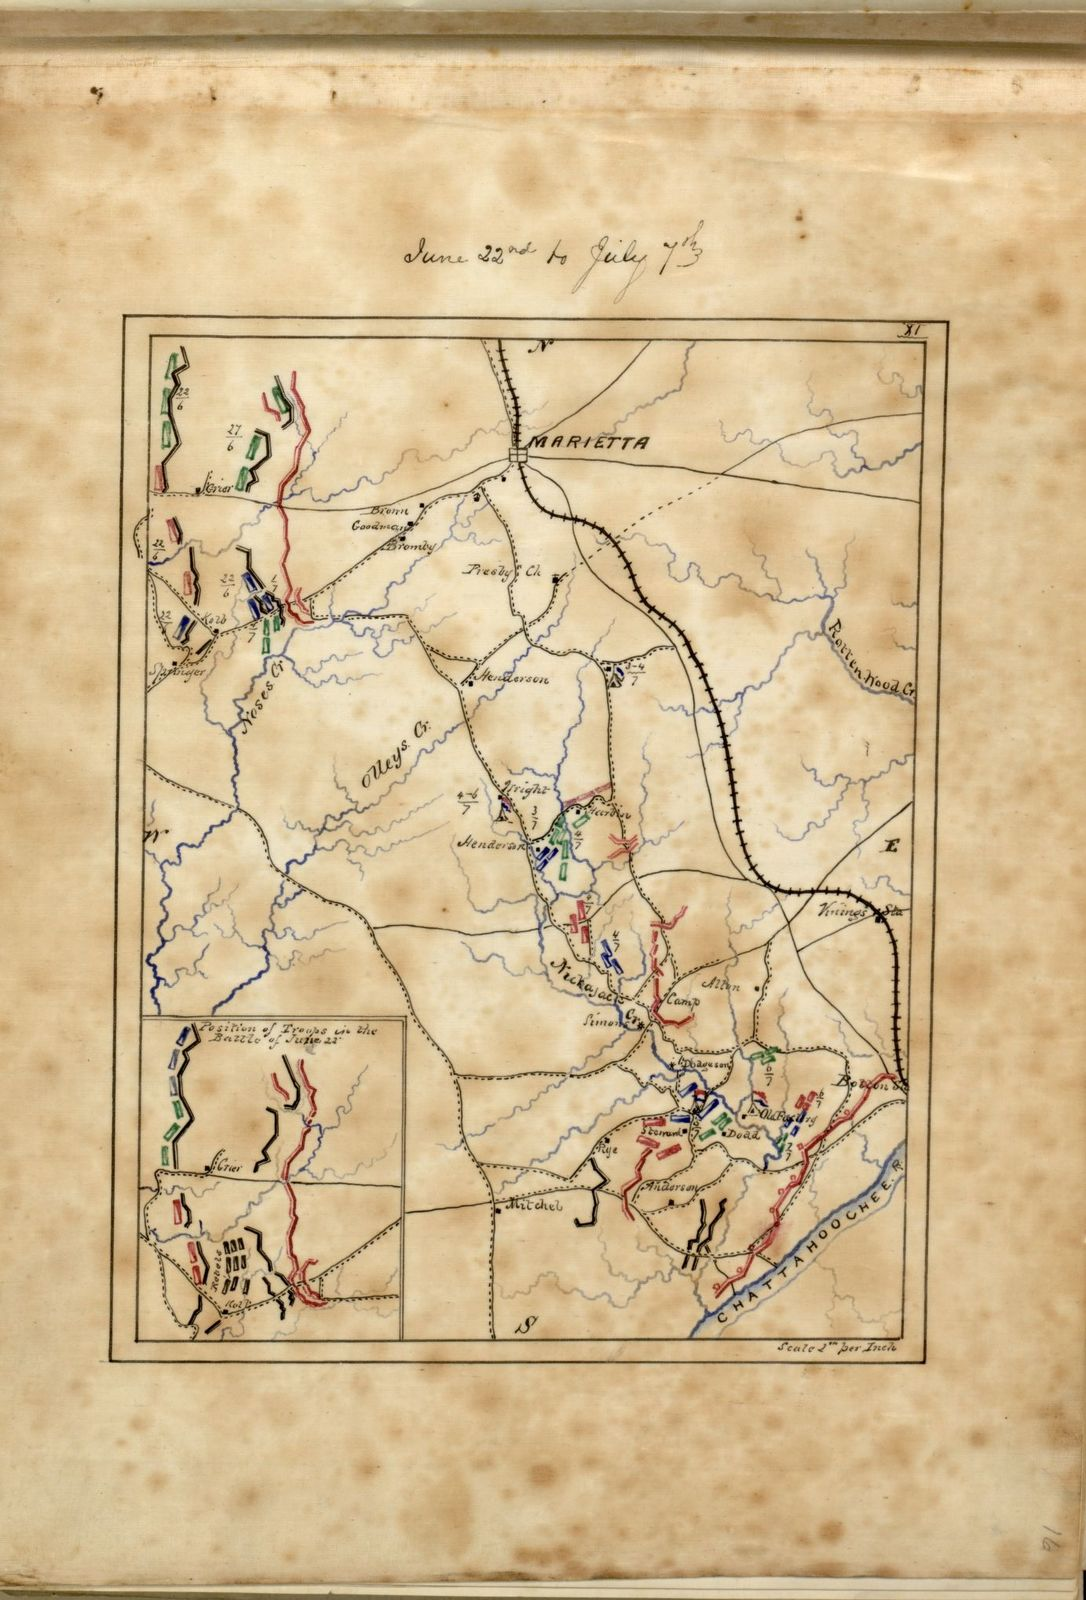 Maps illustrating Gen'l Sherman's